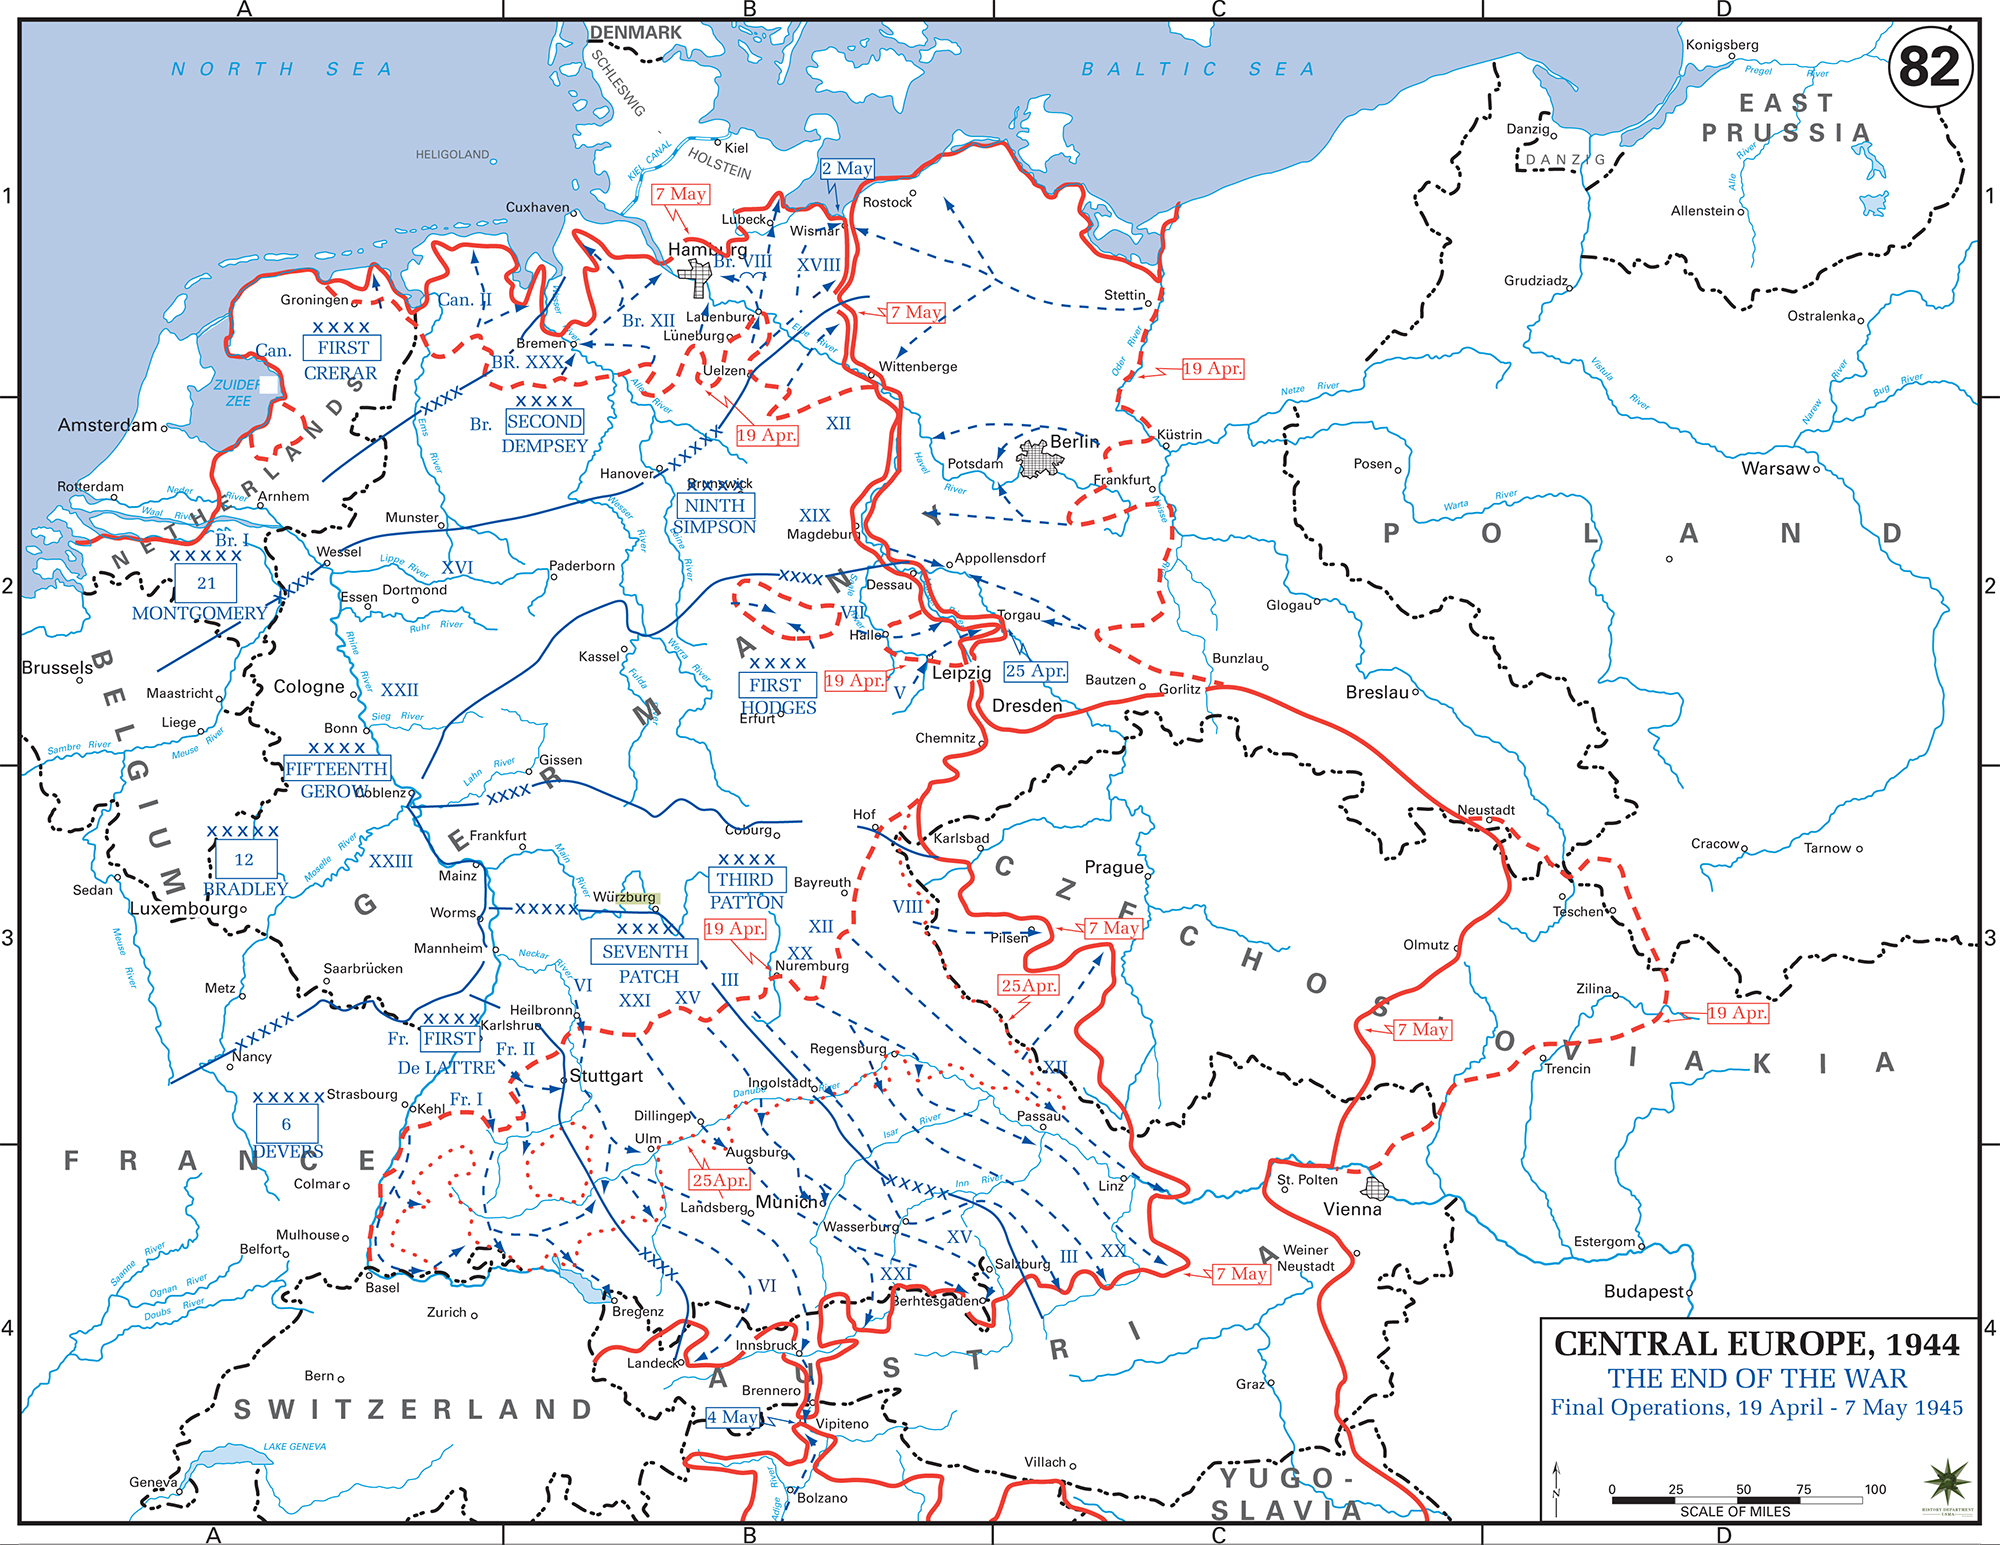 Map of wwii germany may 1945 map of world war ii germany final operations april 19 may 7 gumiabroncs Images